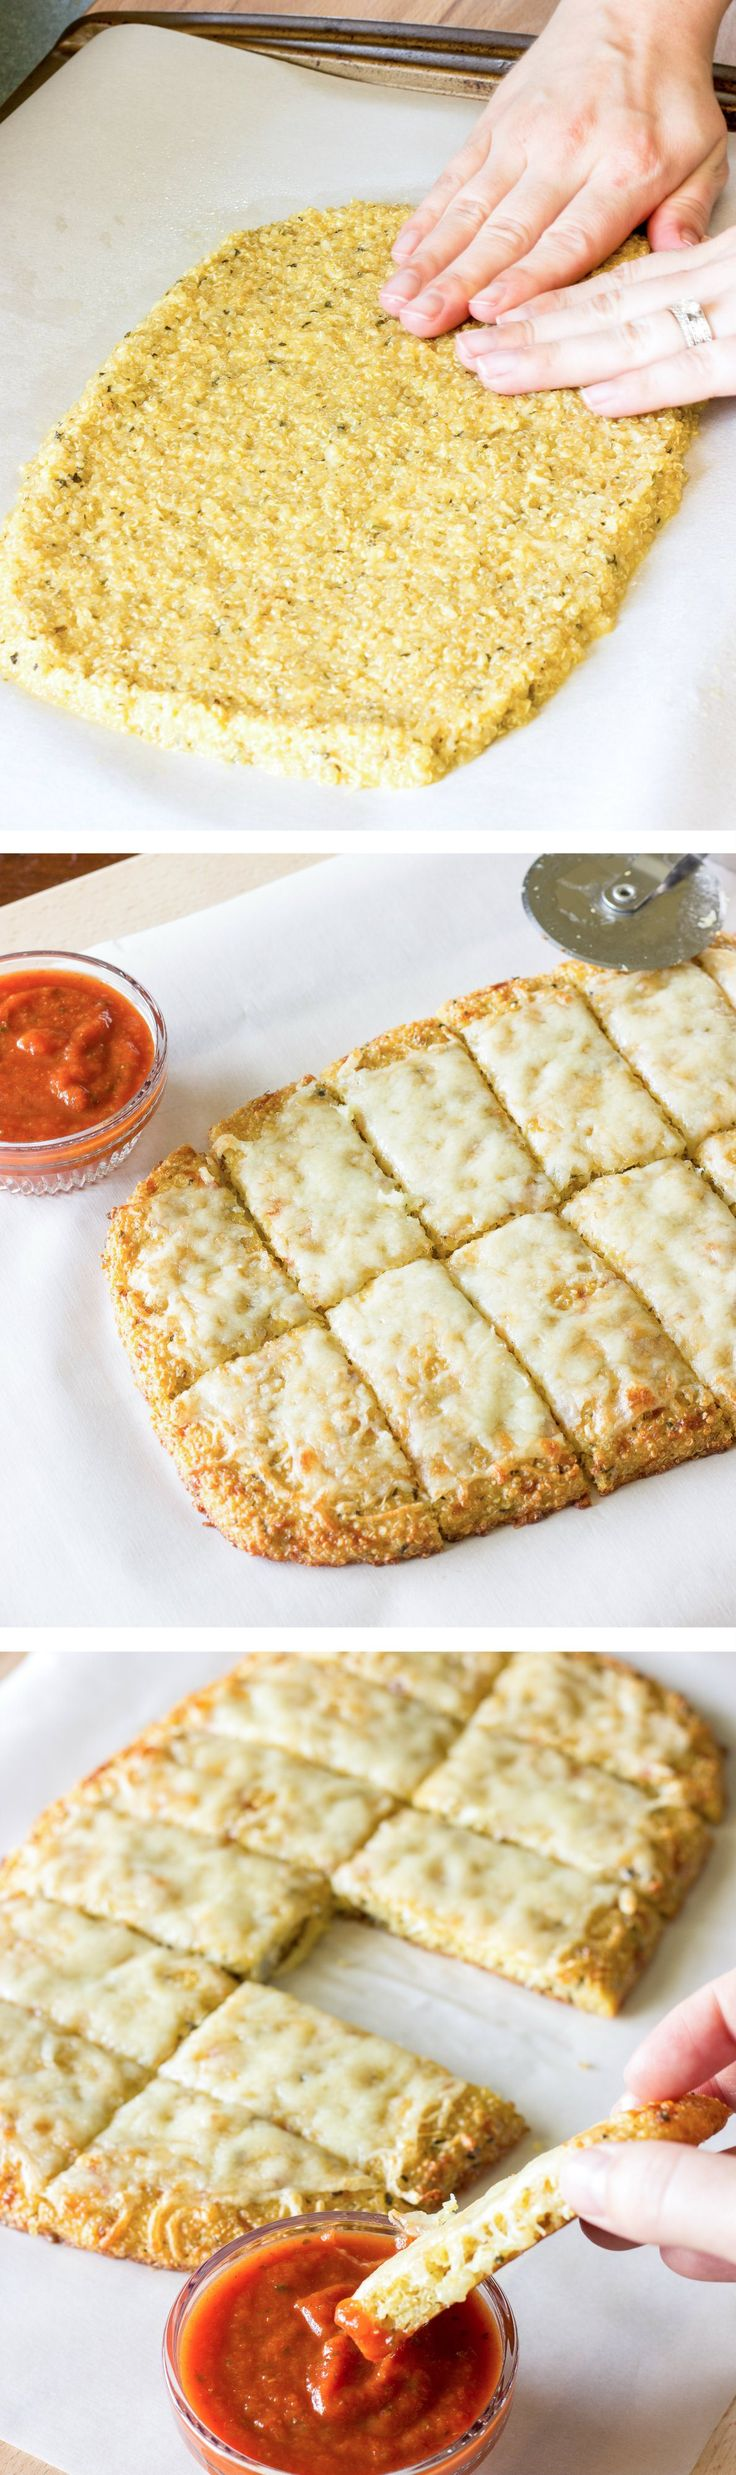 Quinoa Crust for Pizza: double recipe, add 1/2c extra cooked quinoa, and 1/4c extra cheese.